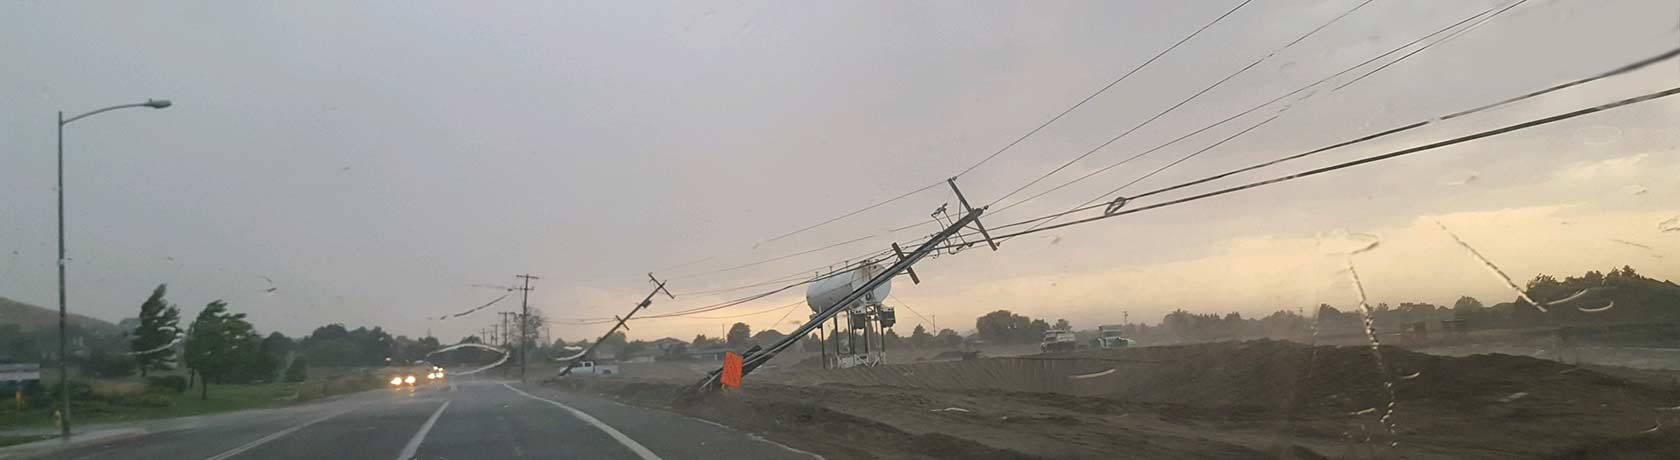 Downed power lines next to the road.